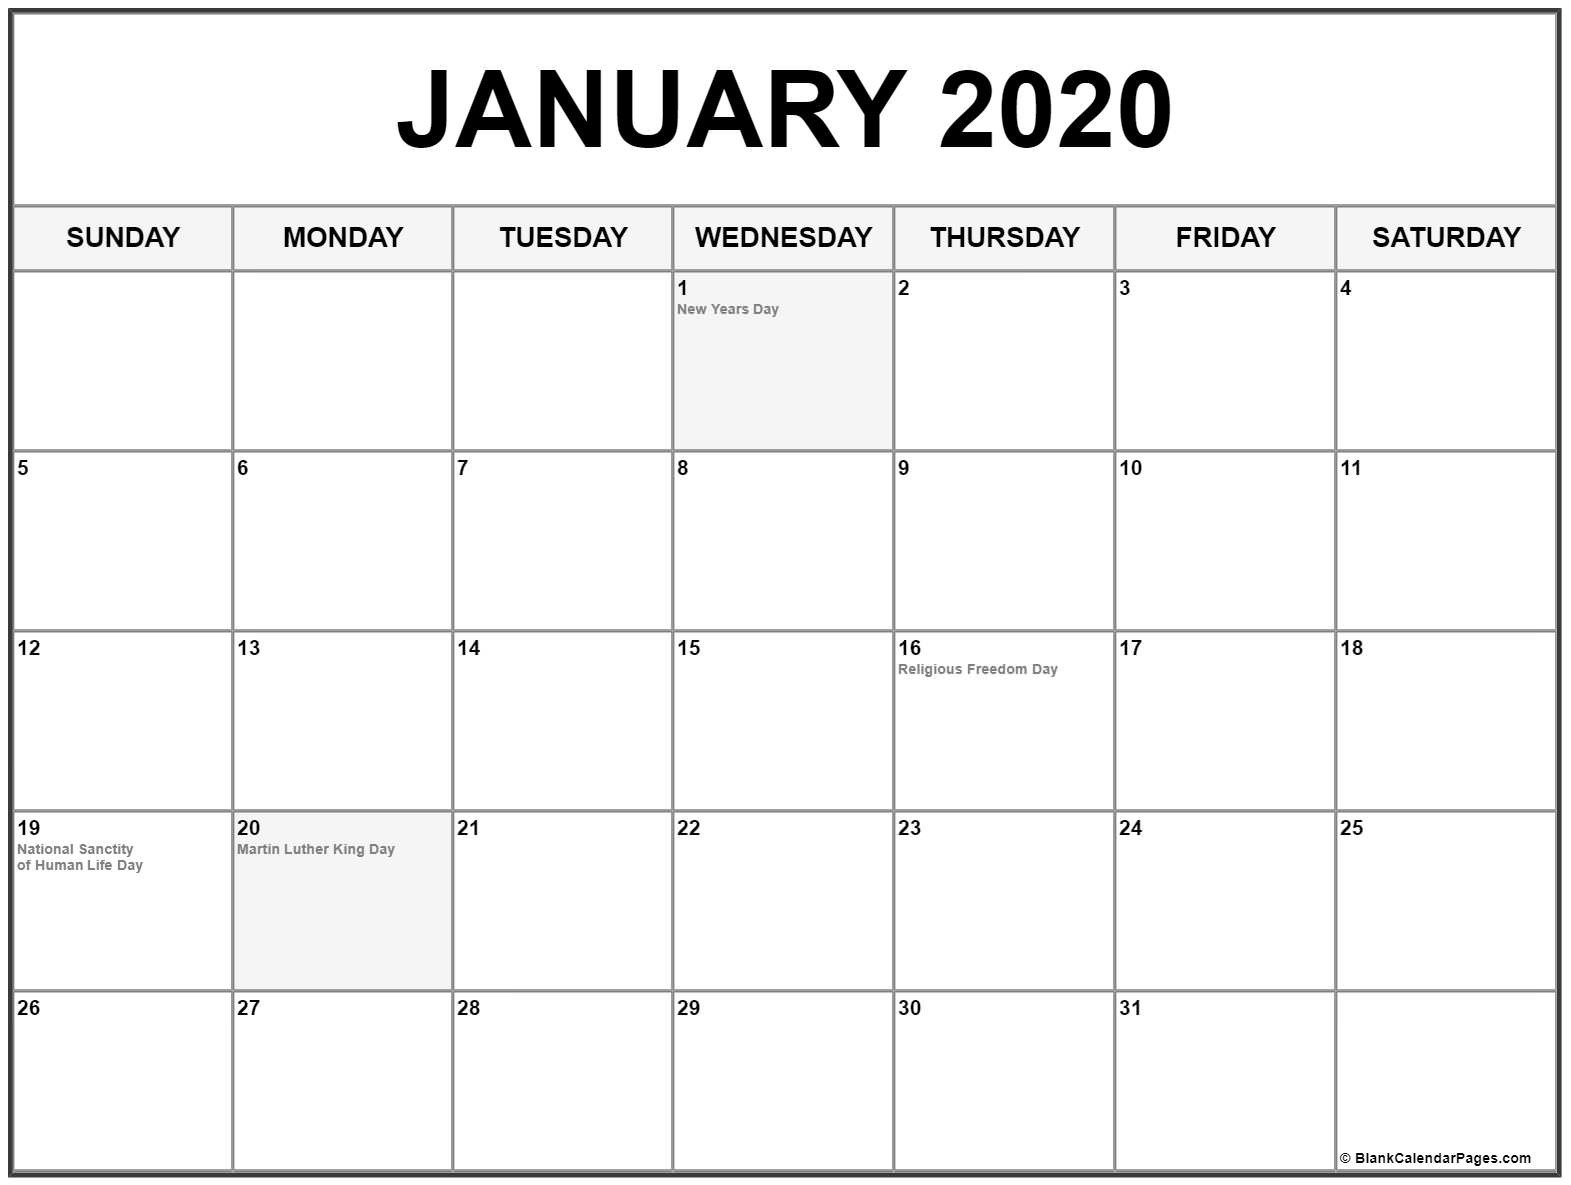 Collection Of January 2020 Calendars With Holidays  2020 Fun National Holiday Calendar